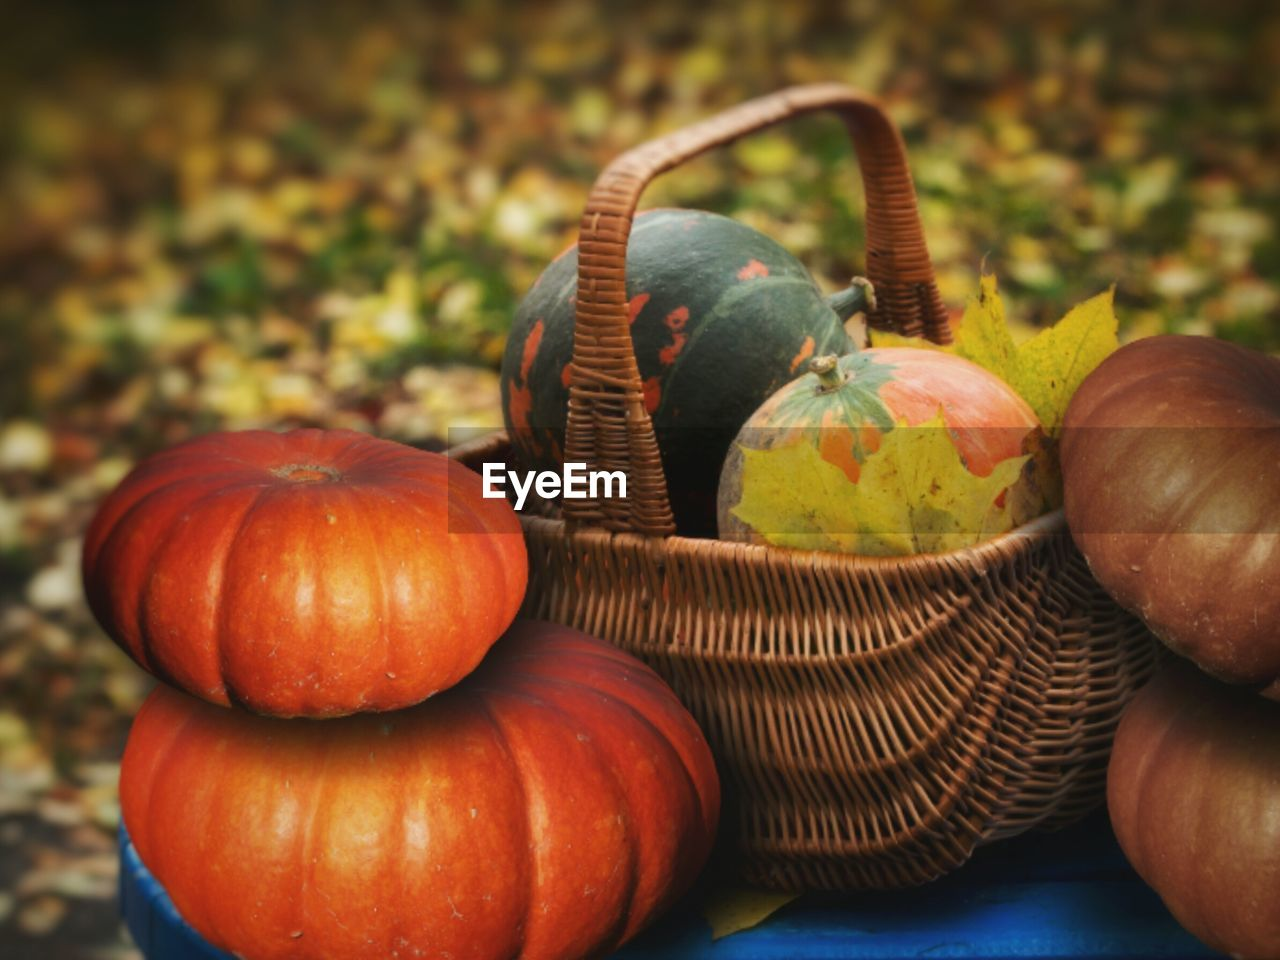 food and drink, food, healthy eating, vegetable, wellbeing, still life, freshness, no people, focus on foreground, close-up, pumpkin, fruit, table, autumn, basket, container, orange color, day, nature, indoors